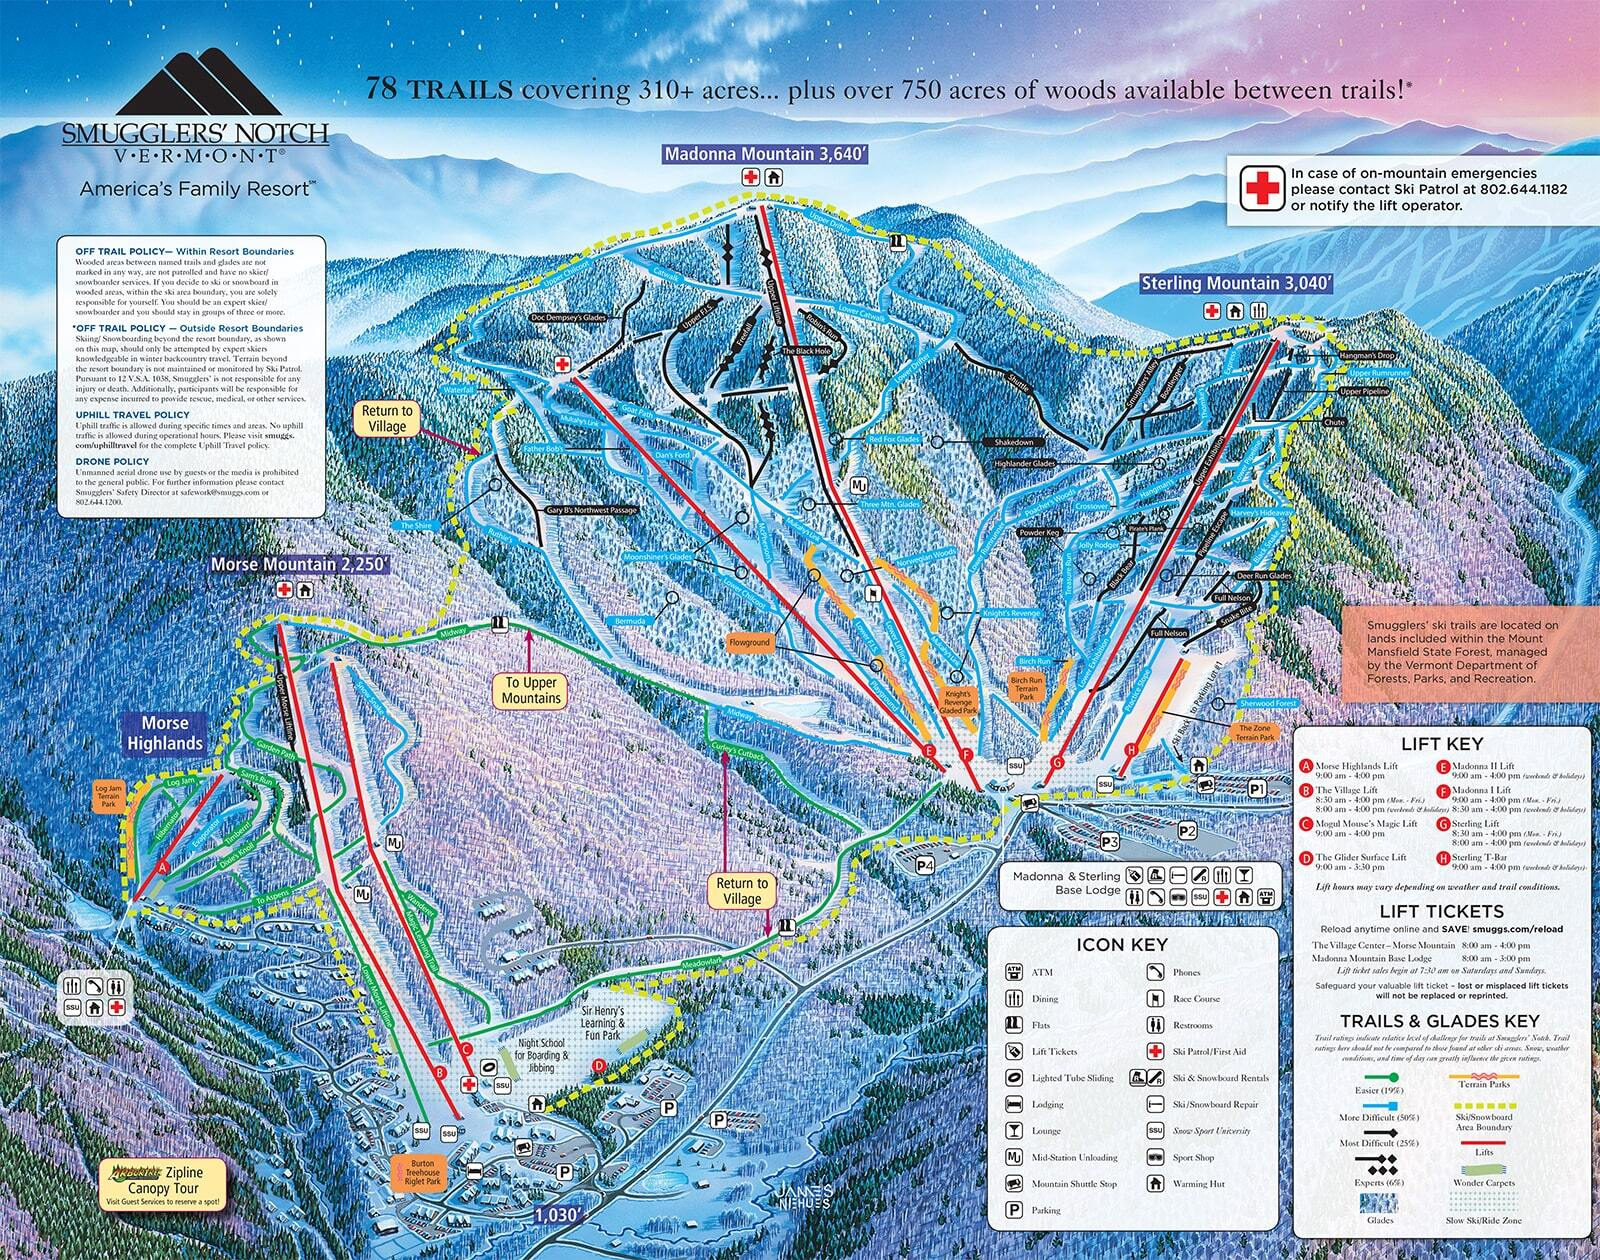 Smuggler's Notch Piste / Trail Map